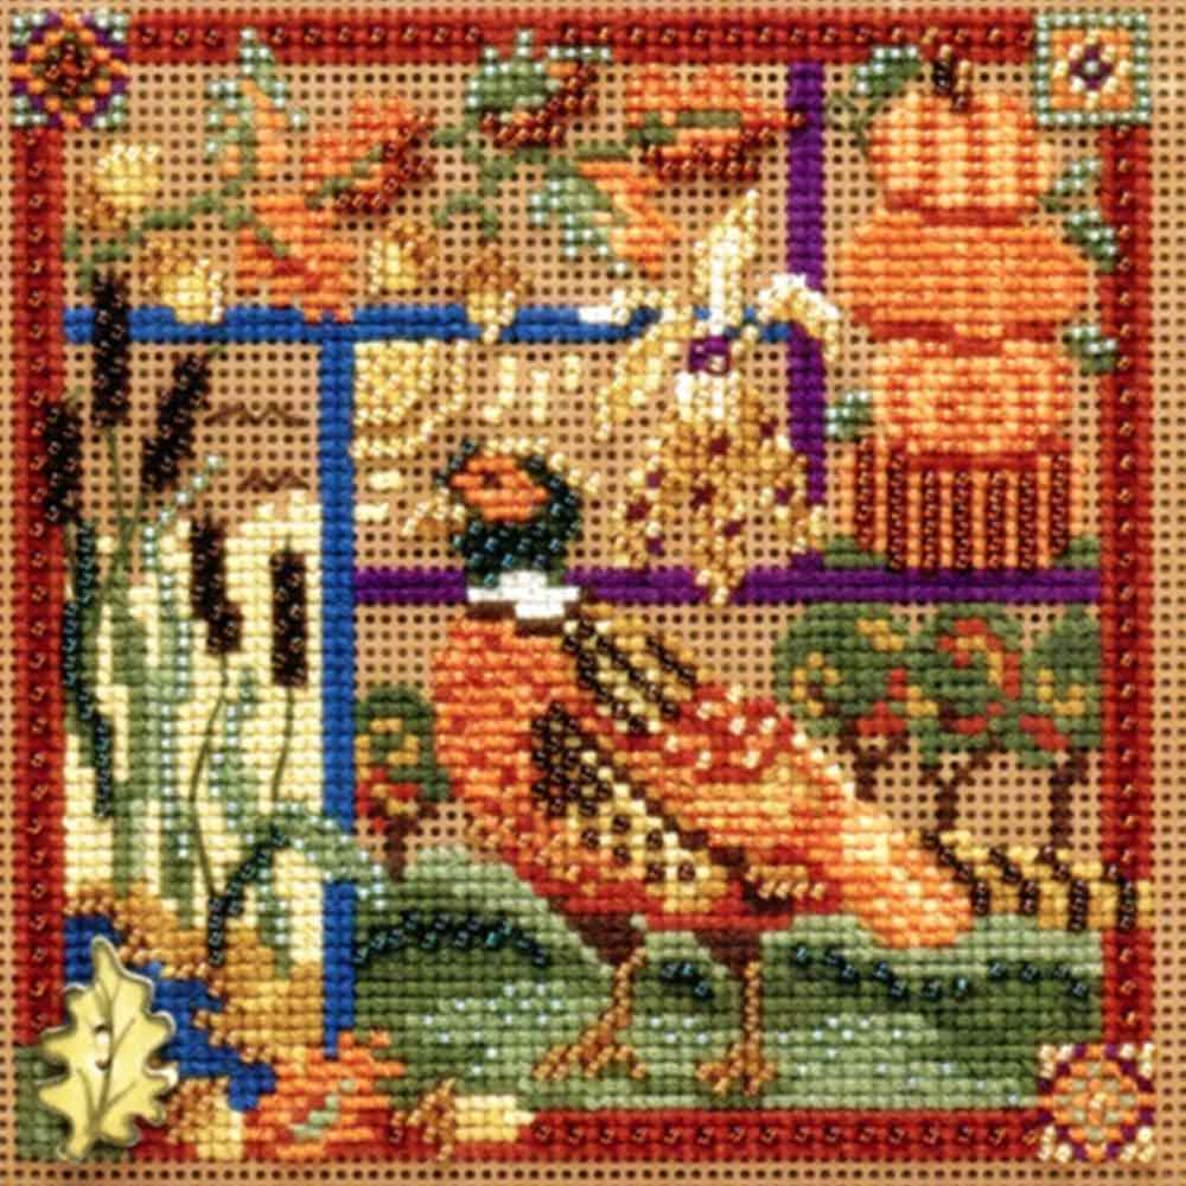 Pheasant Sampler Beaded Counted Cross Stitch Kit Mill Hill Buttons & Beads 2009 Autumn MH149203